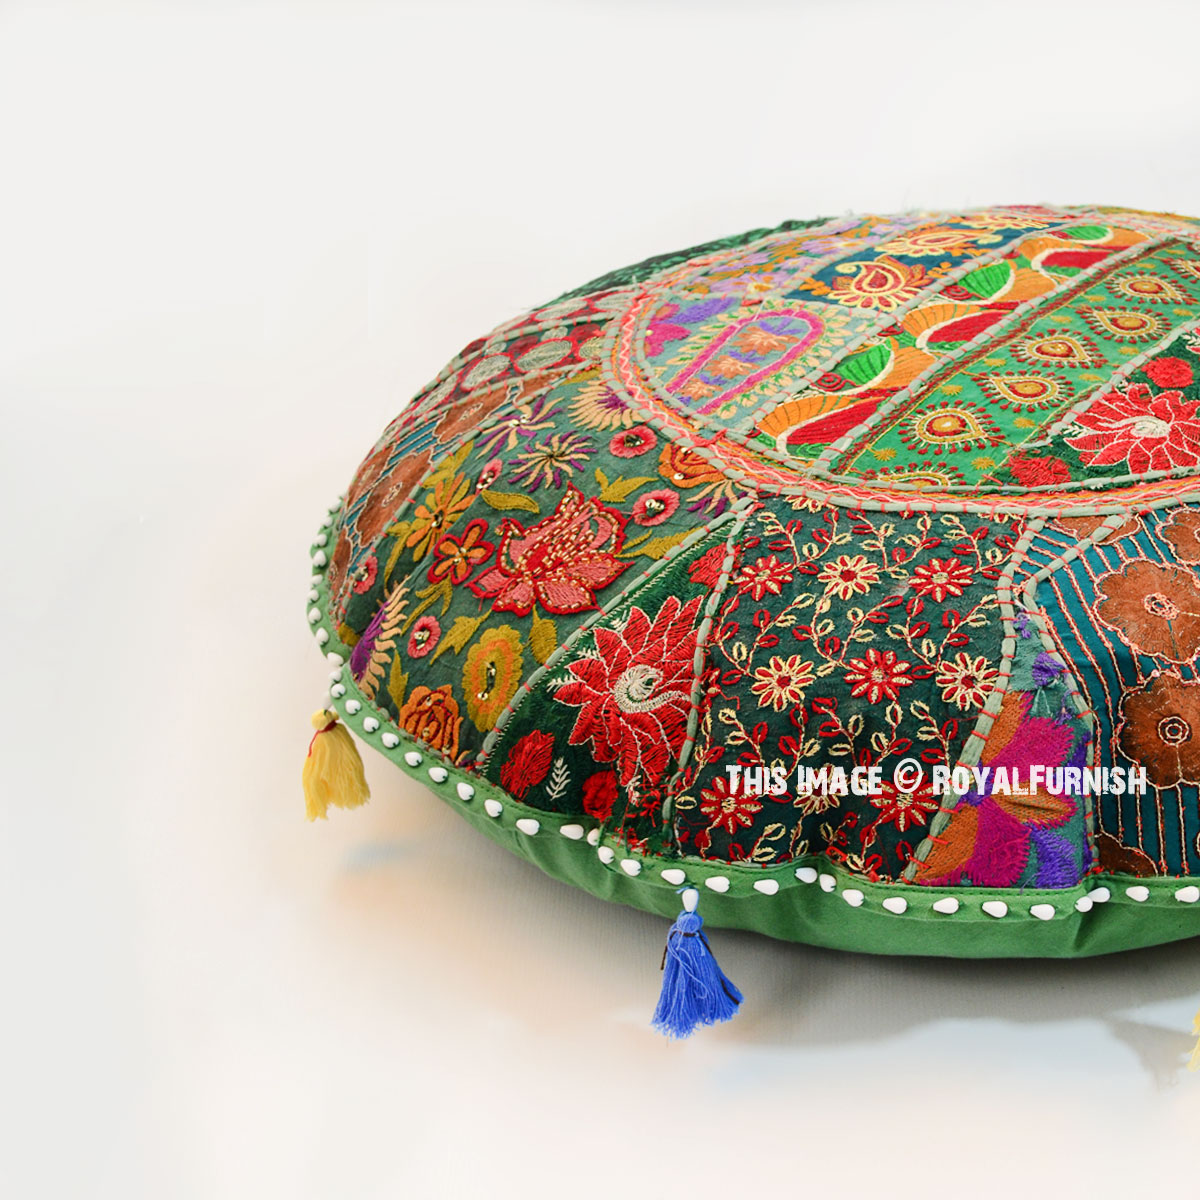 Oversized Round Floor Pillows : Oversized 71 Cm. Vintage Patchwork Round Floor Seating Pillow Cover - RoyalFurnish.com